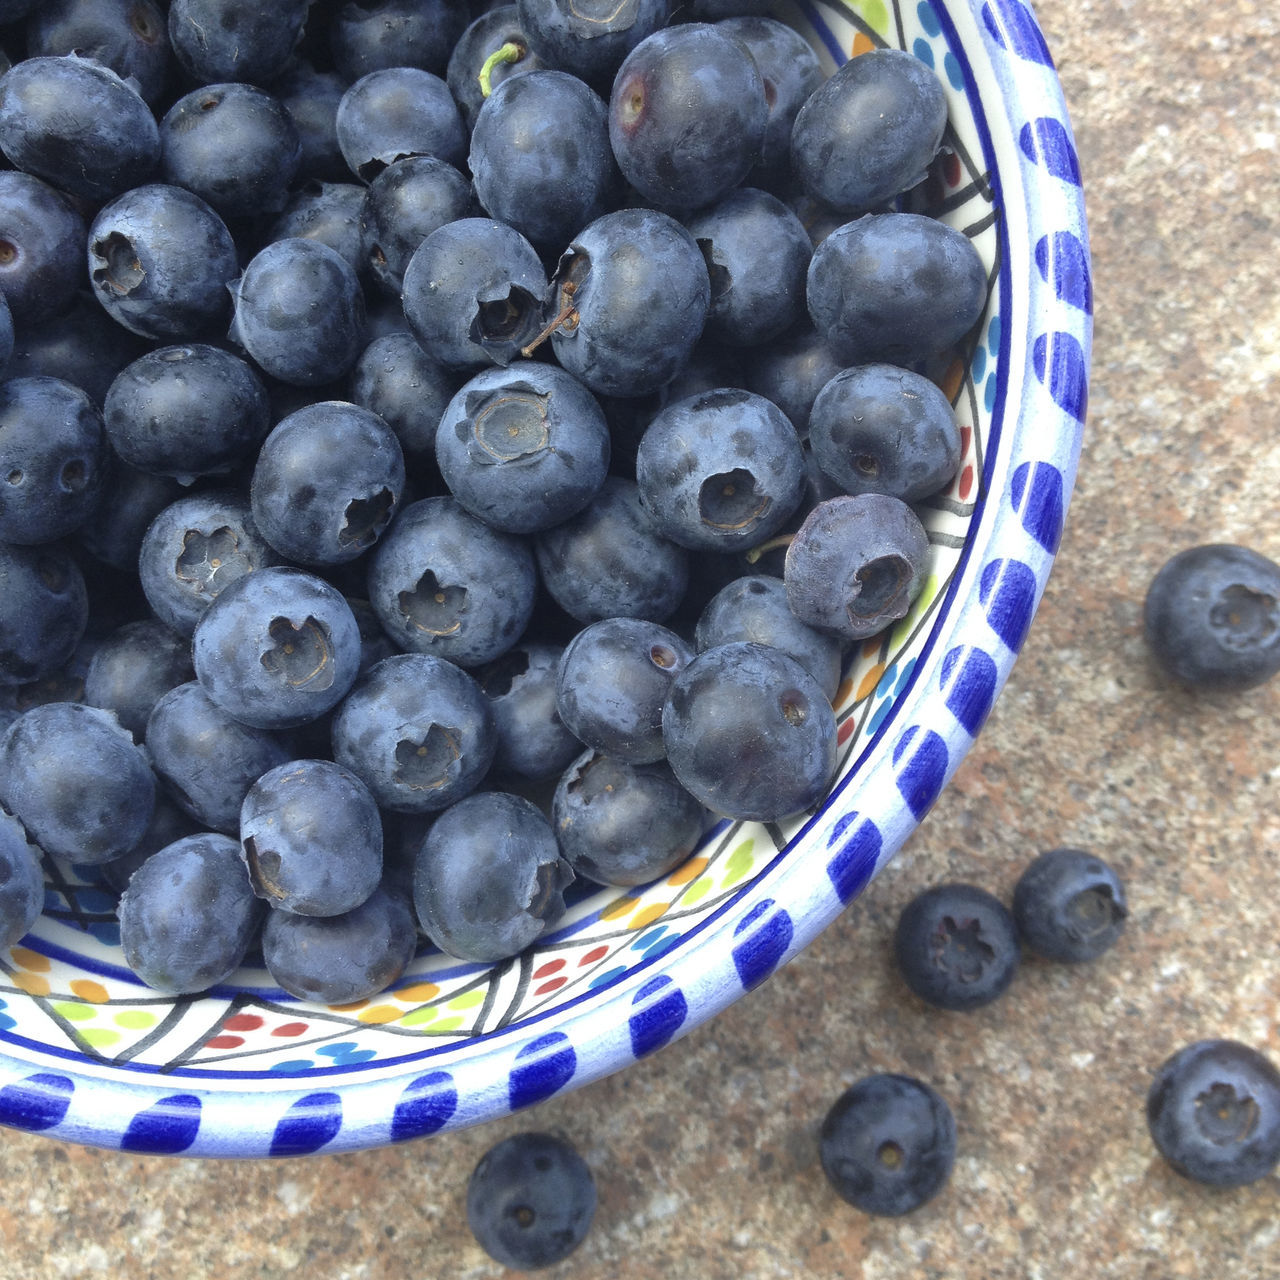 healthy eating, food and drink, still life, fruit, food, no people, large group of objects, blueberry, bowl, freshness, close-up, day, outdoors